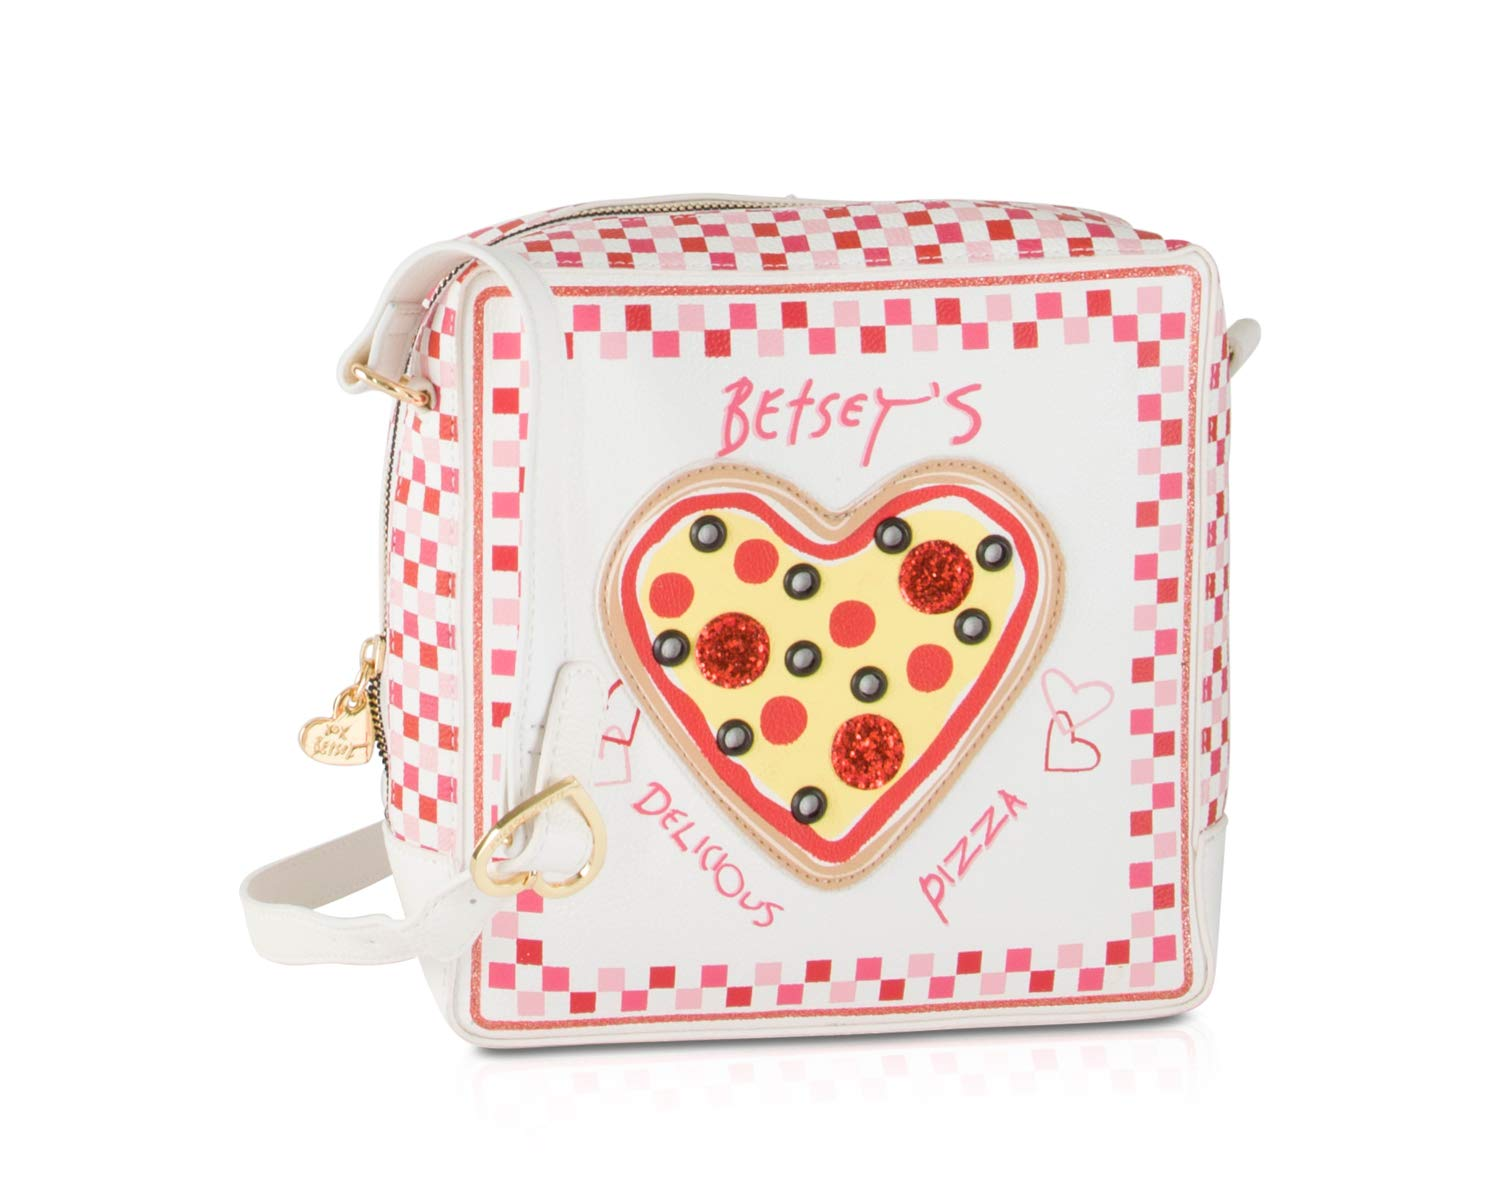 ویکالا · خرید  اصل اورجینال · خرید از آمازون · Betsey Johnson Kitch Pizza Box Kitch Crossbody Shoulder Bag - Cream wekala · ویکالا